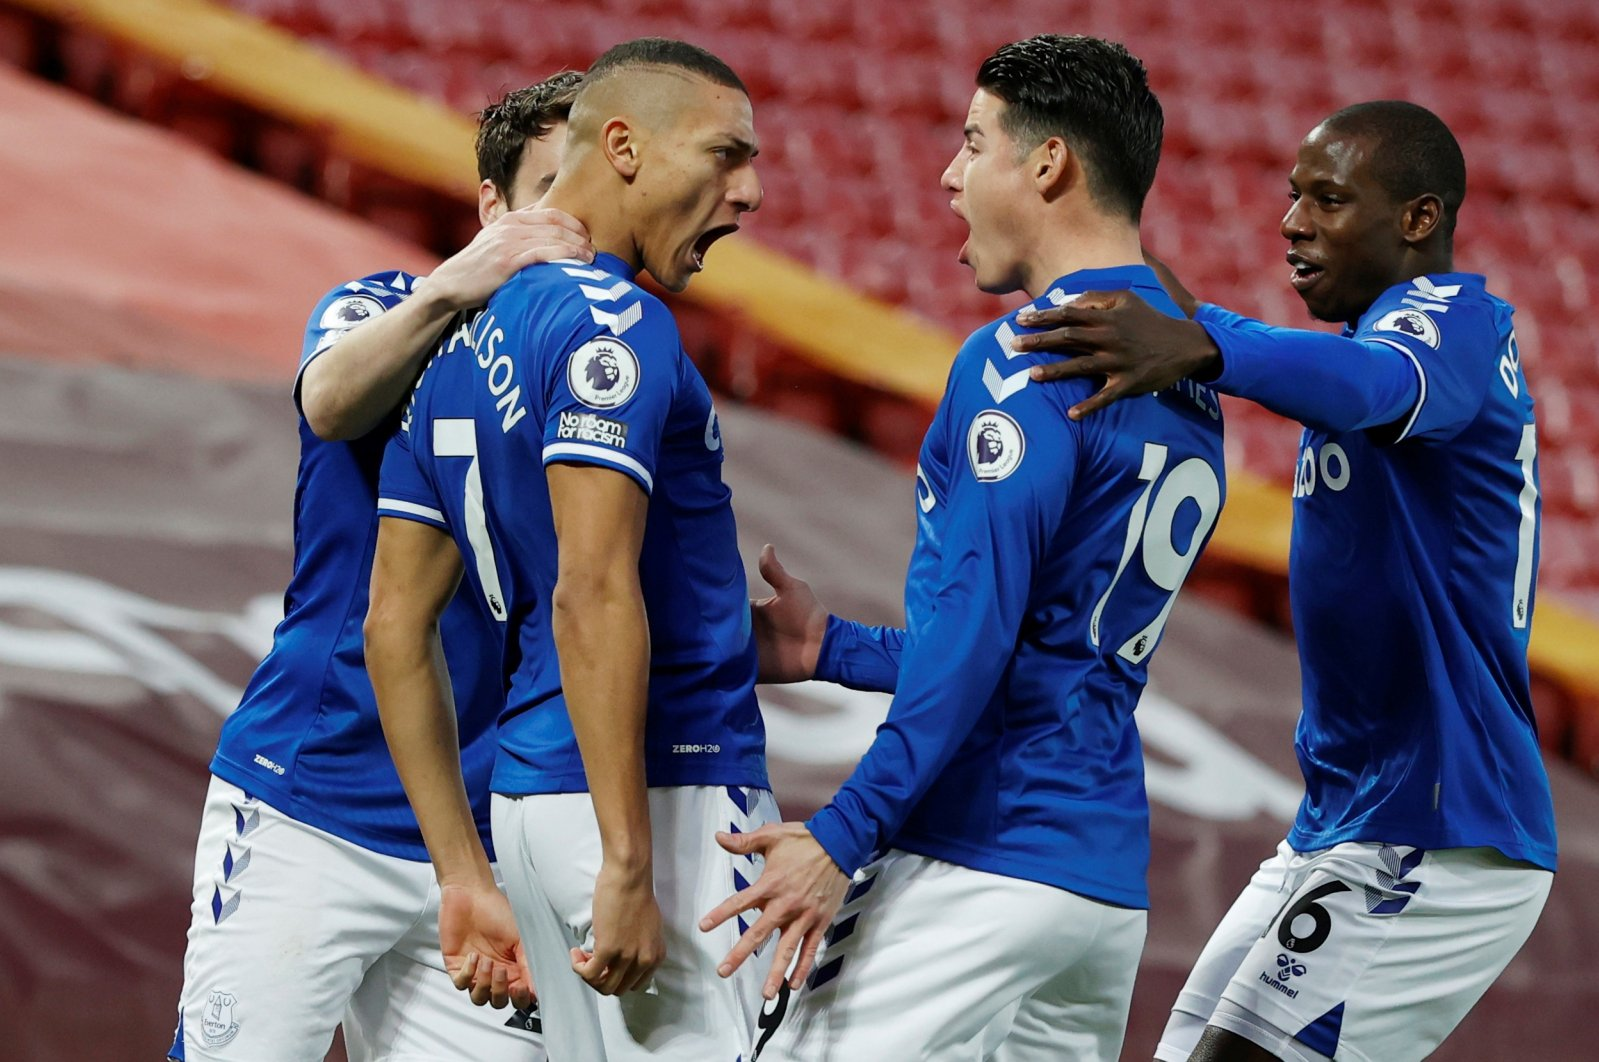 Everton's Richarlison celebrates scoring his team'sfirst goal in the Premier League matchagainst Liverpool,Anfield, Liverpool, Britain,Feb. 20, 2021. (Reuters Photo)